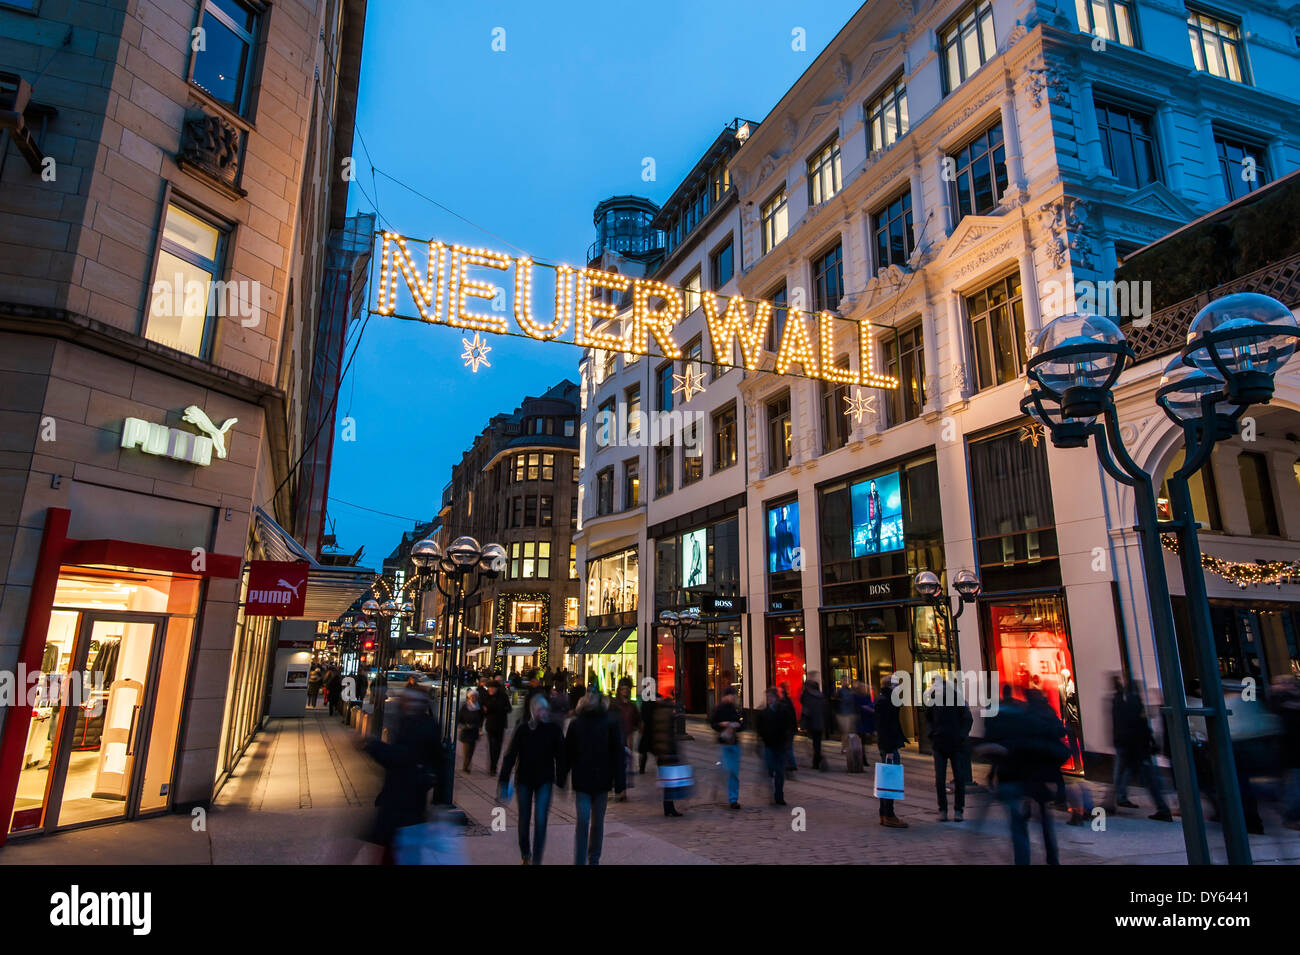 Shopping Street In Hamburg Called Neuer Wall At Christmas